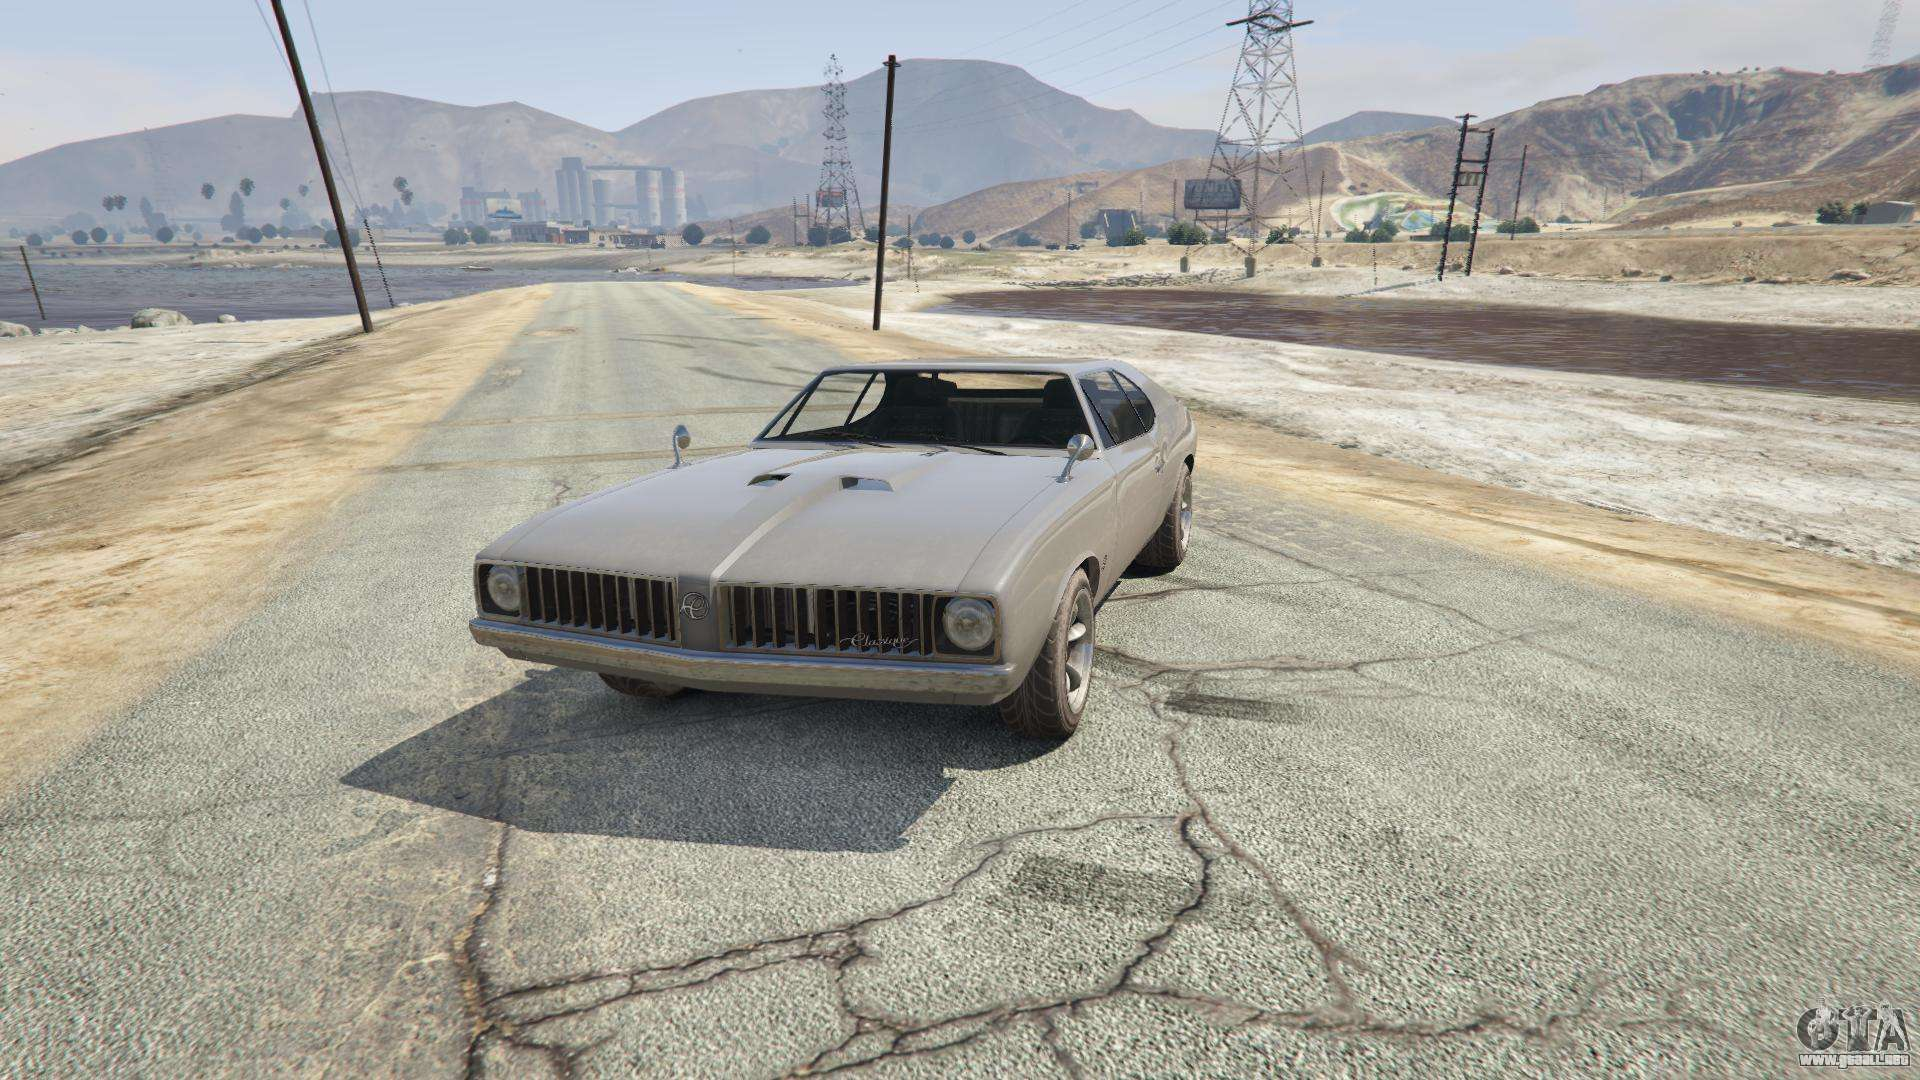 Stallion de GTA 5 - vista frontal